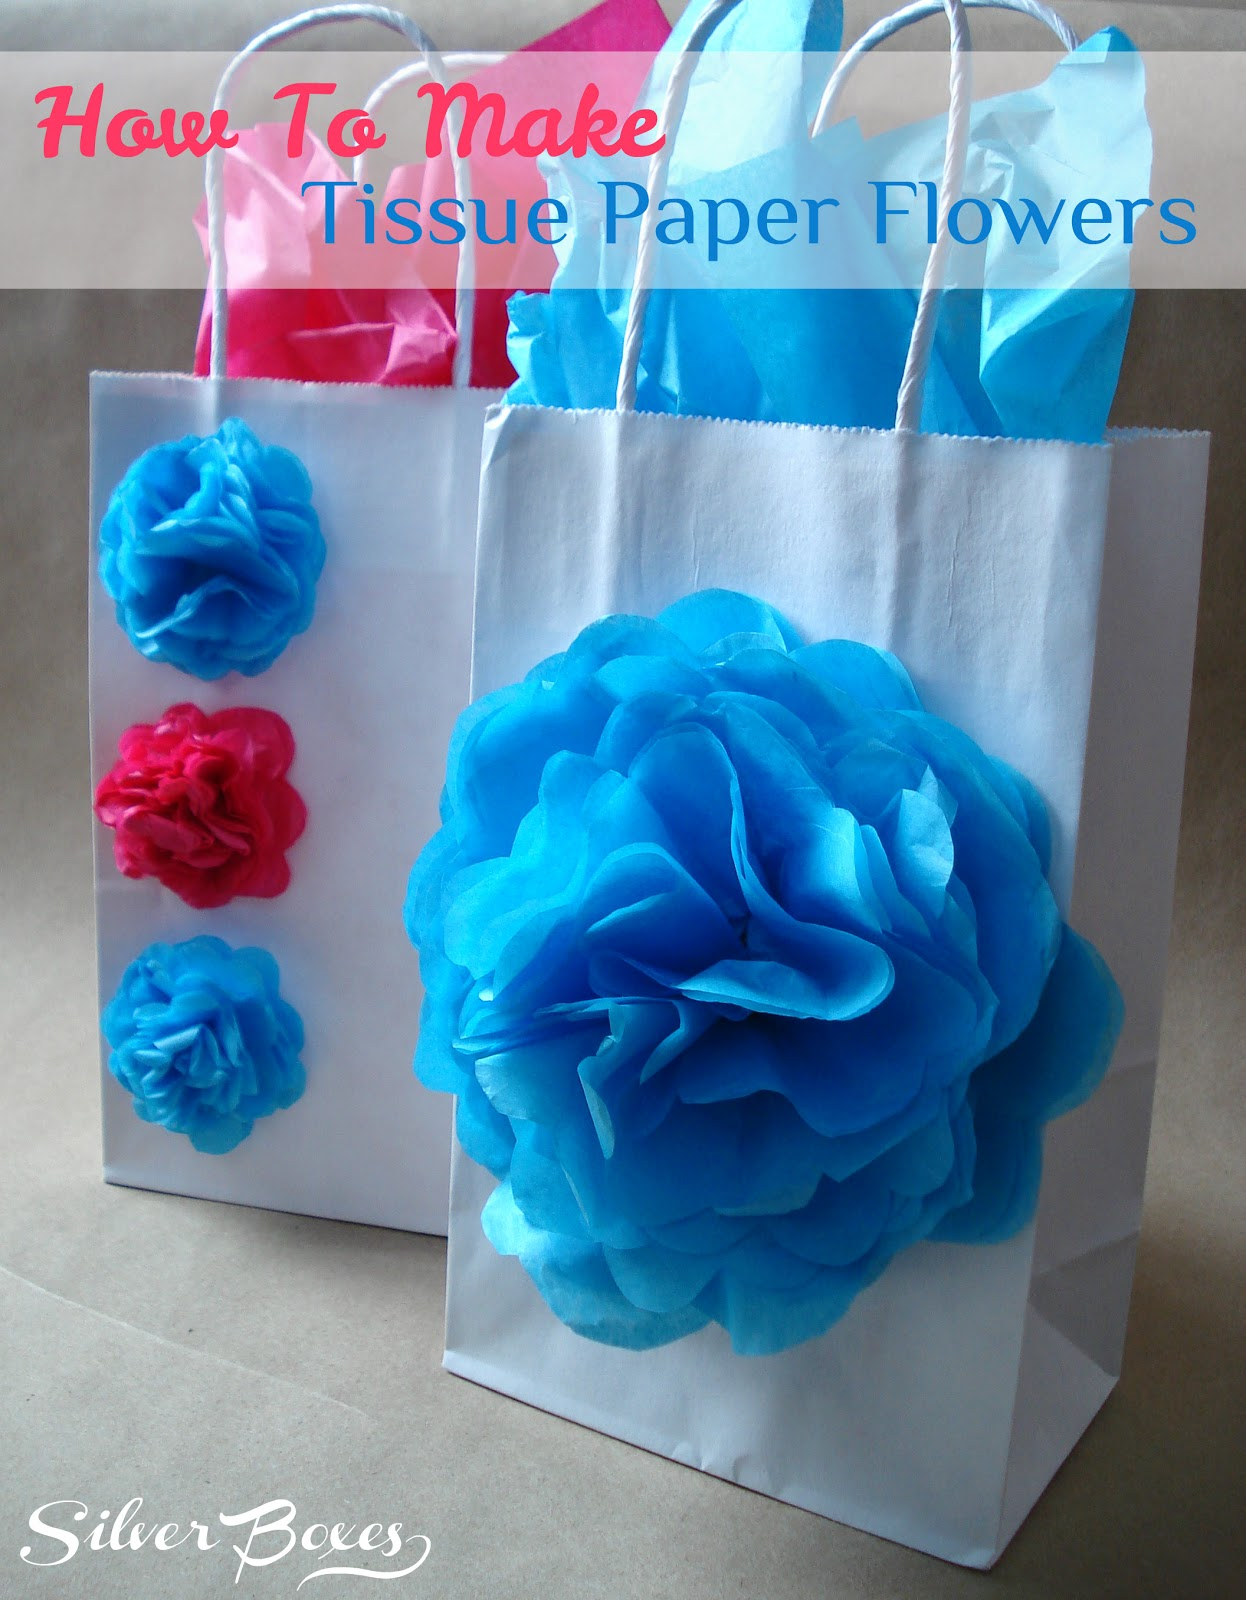 How to make tissue paper flowers for napkin rings